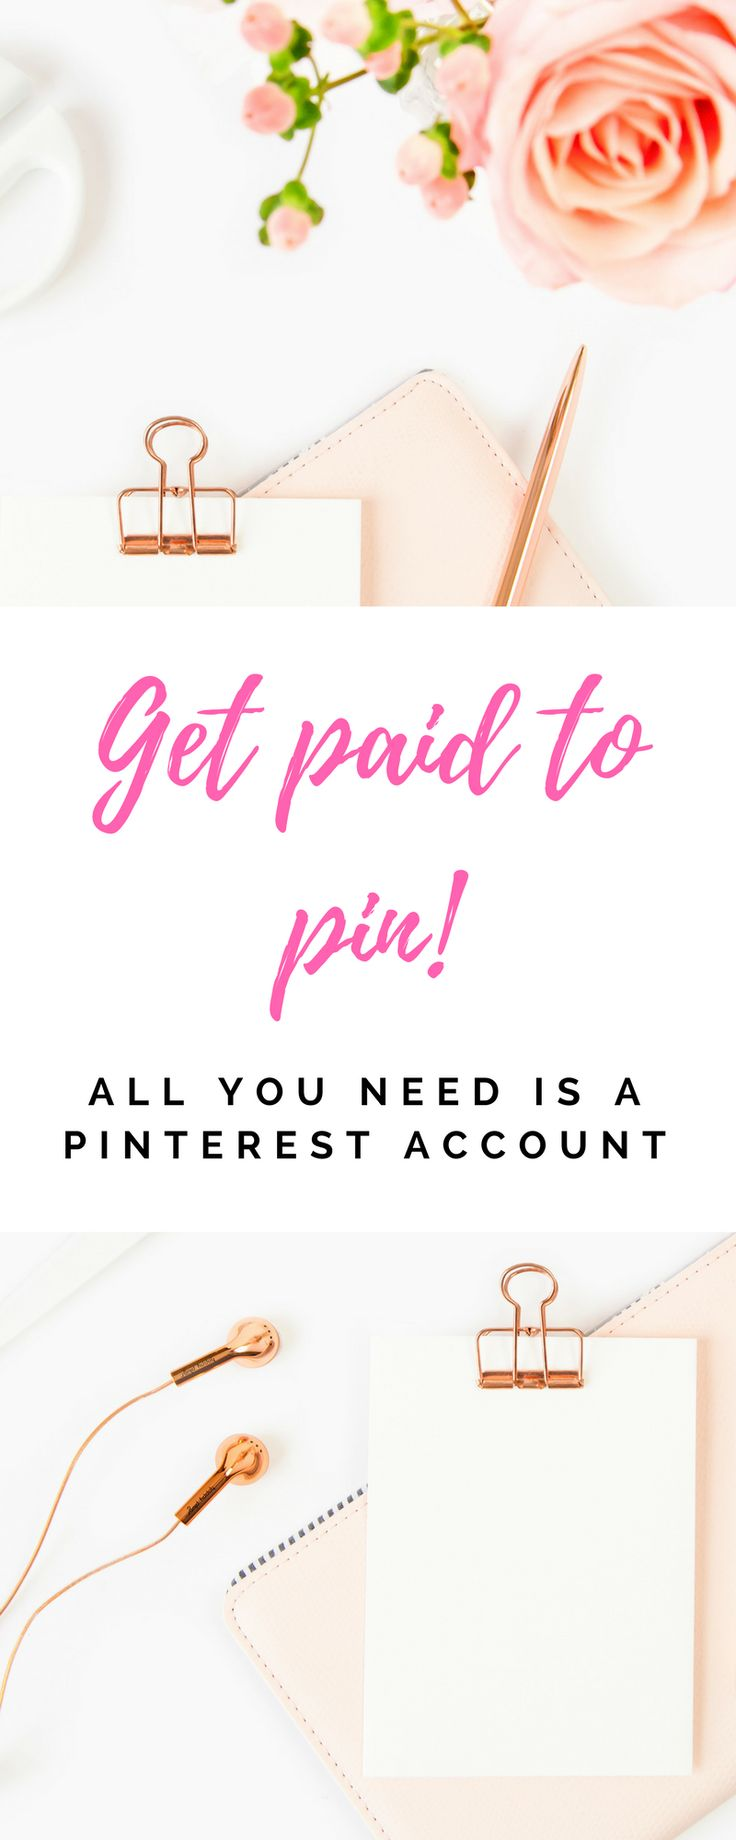 Making passive income just by pinning on Pinterest? Yes, that's possible. Read more on how this blogger makes money online just by pinning. No blog needed. #affiliate #moneymaking